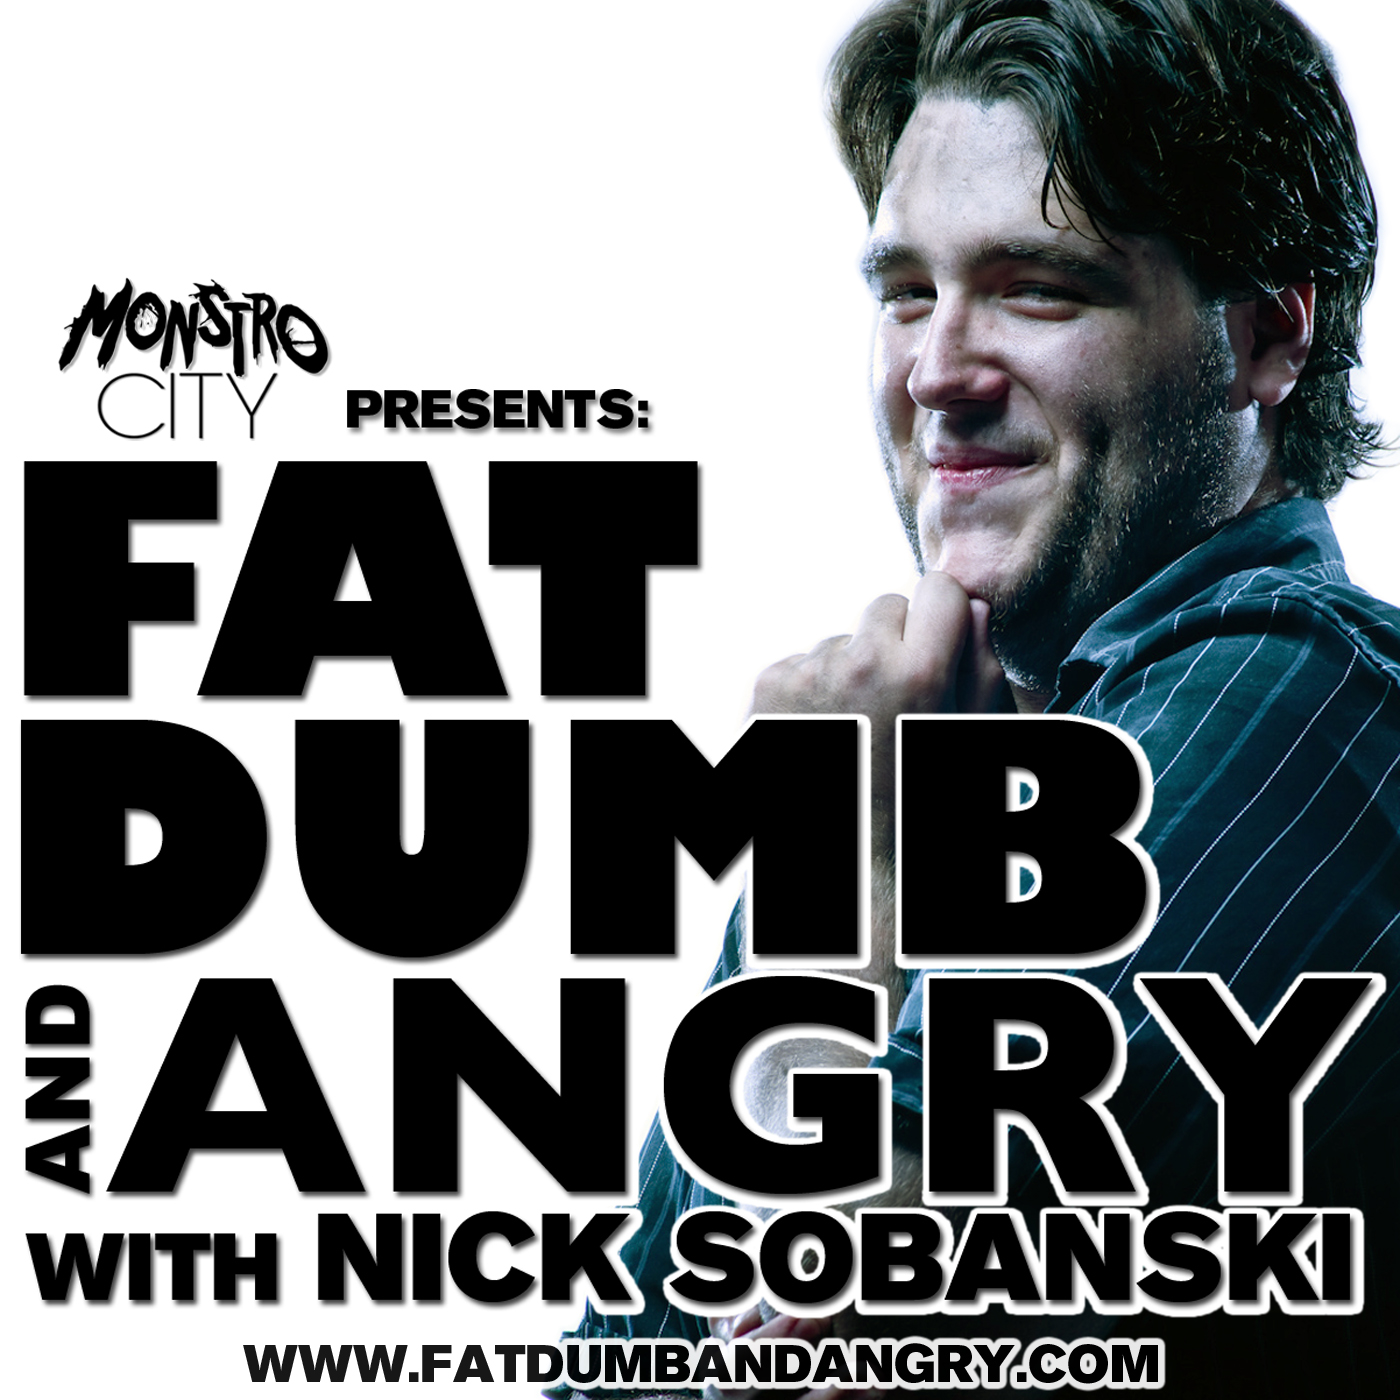 Fat Dumb and Angry with Nick Sobanski